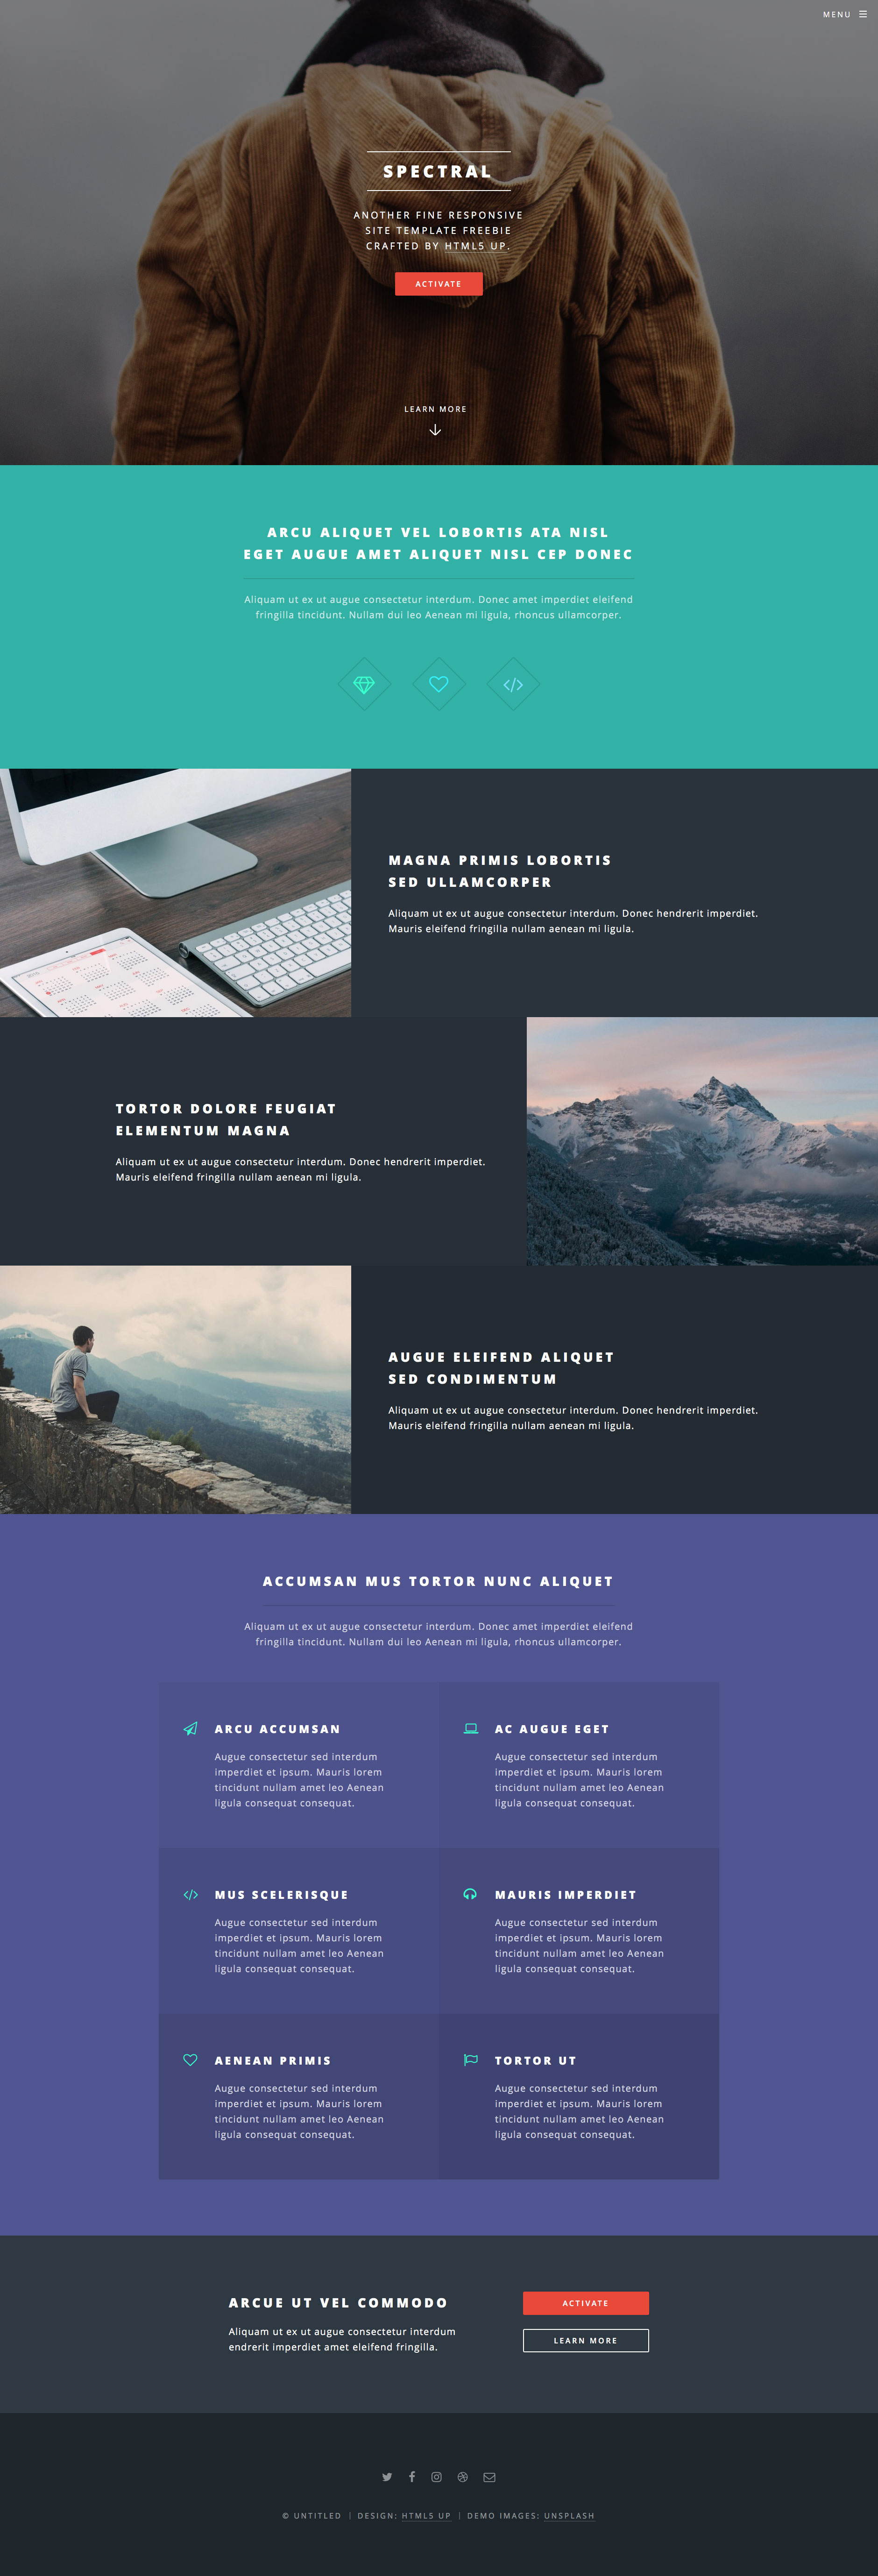 Spectral is a free responsive HTML5 website template for personal or portfolio websites built with the latest HTML5 and CSS3 technology. Spectral template is fully responsive, Retina ready and uses custom framework.